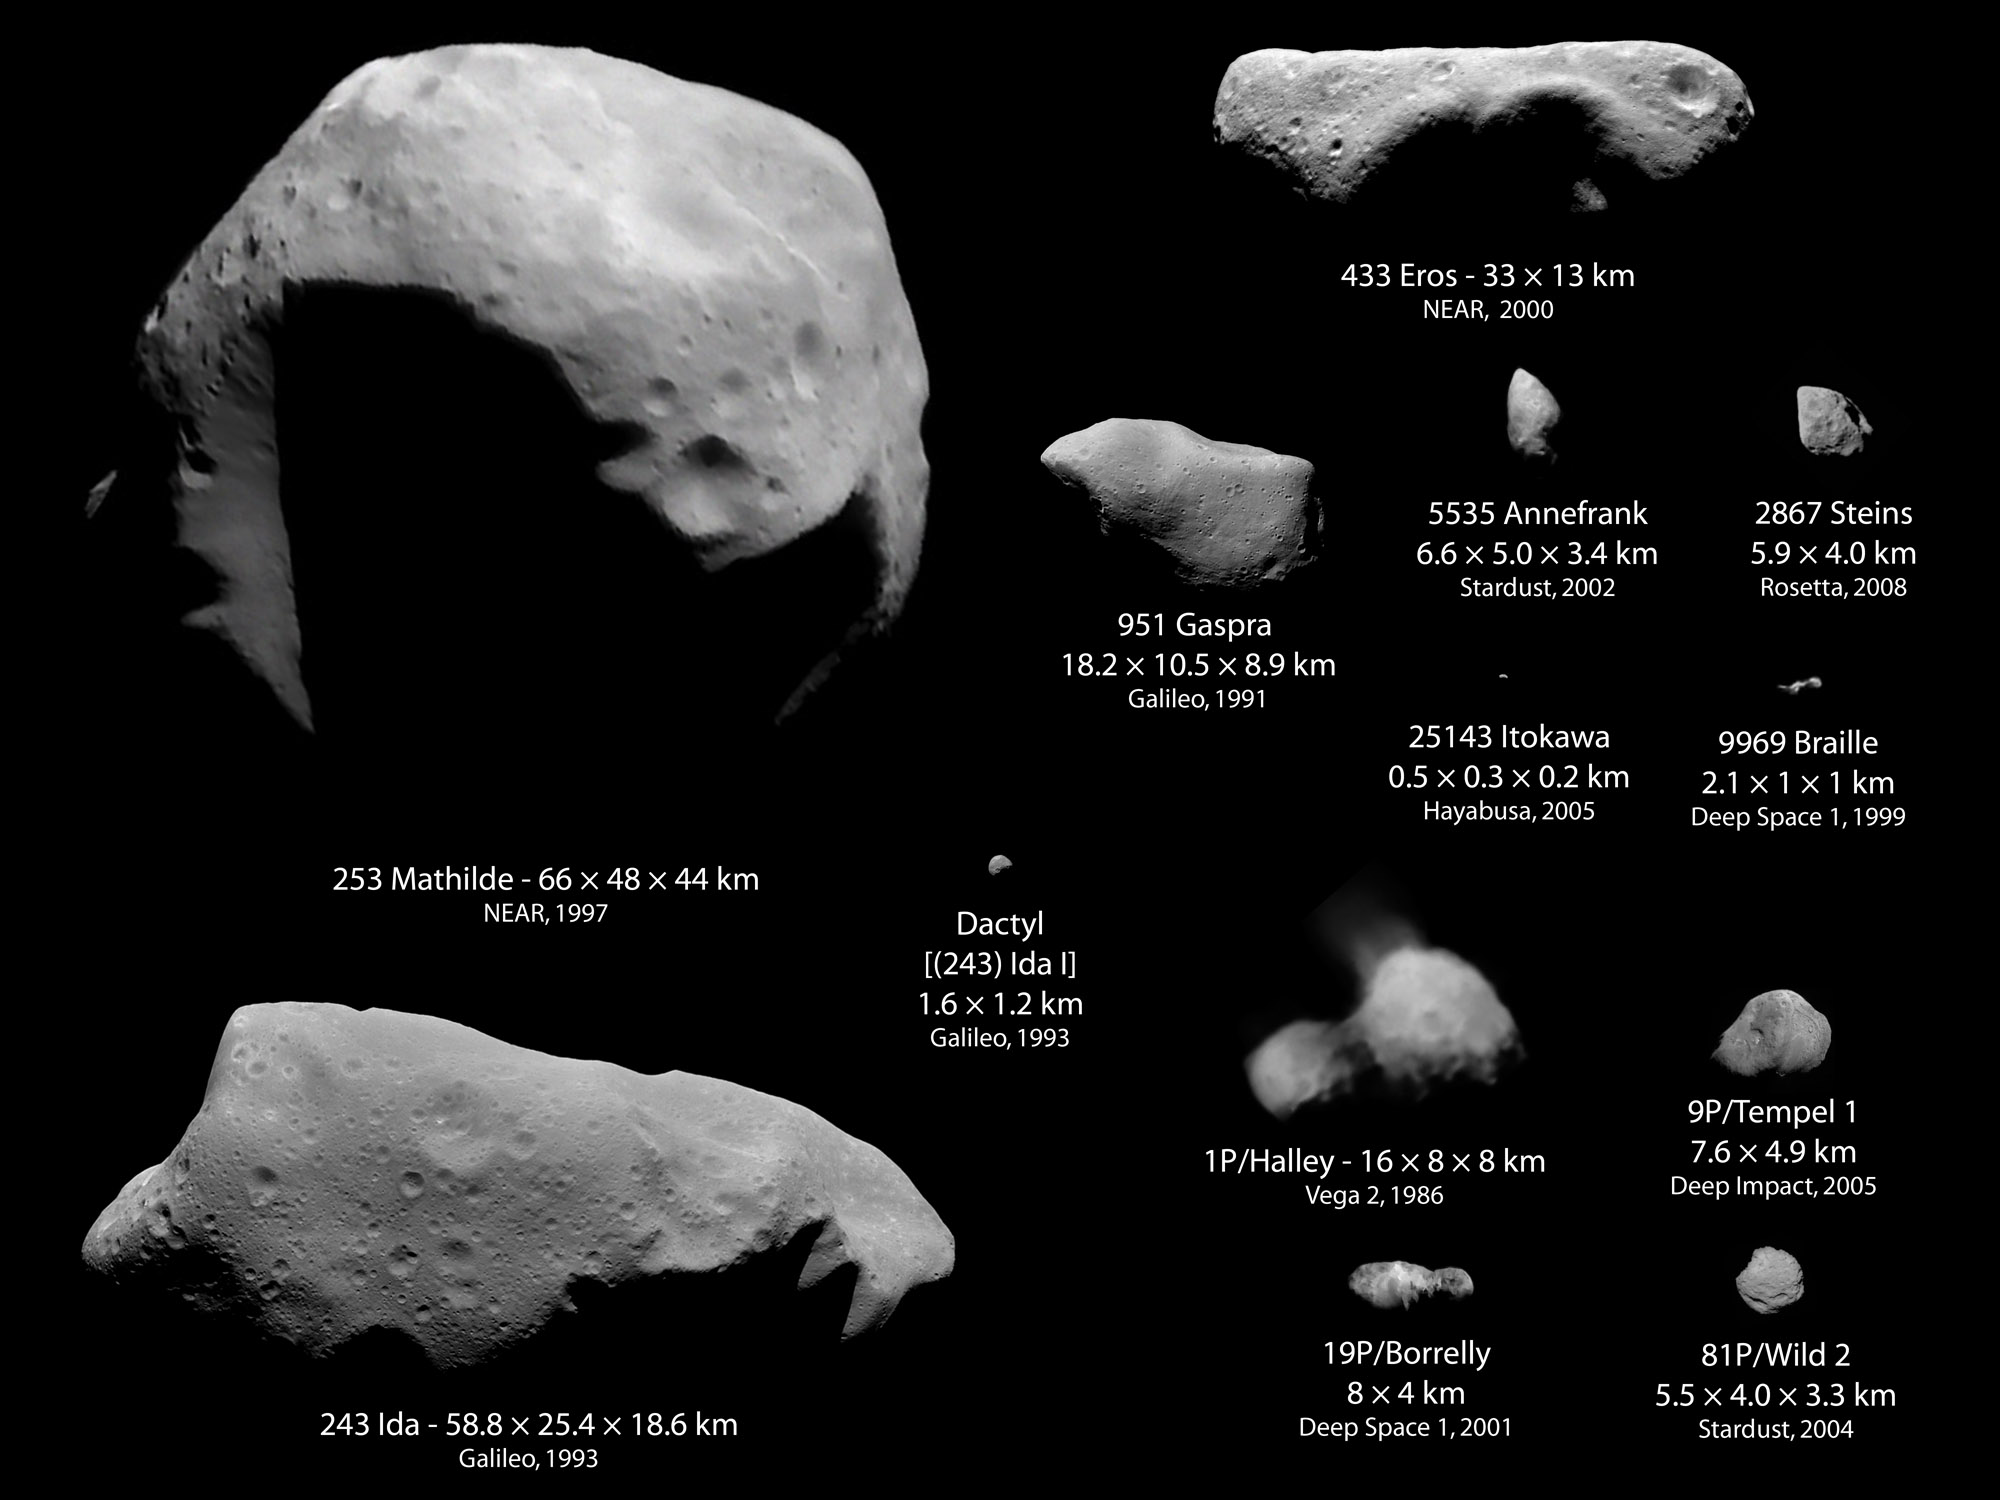 This diagram shows various asteroids in the solar system and their sizes